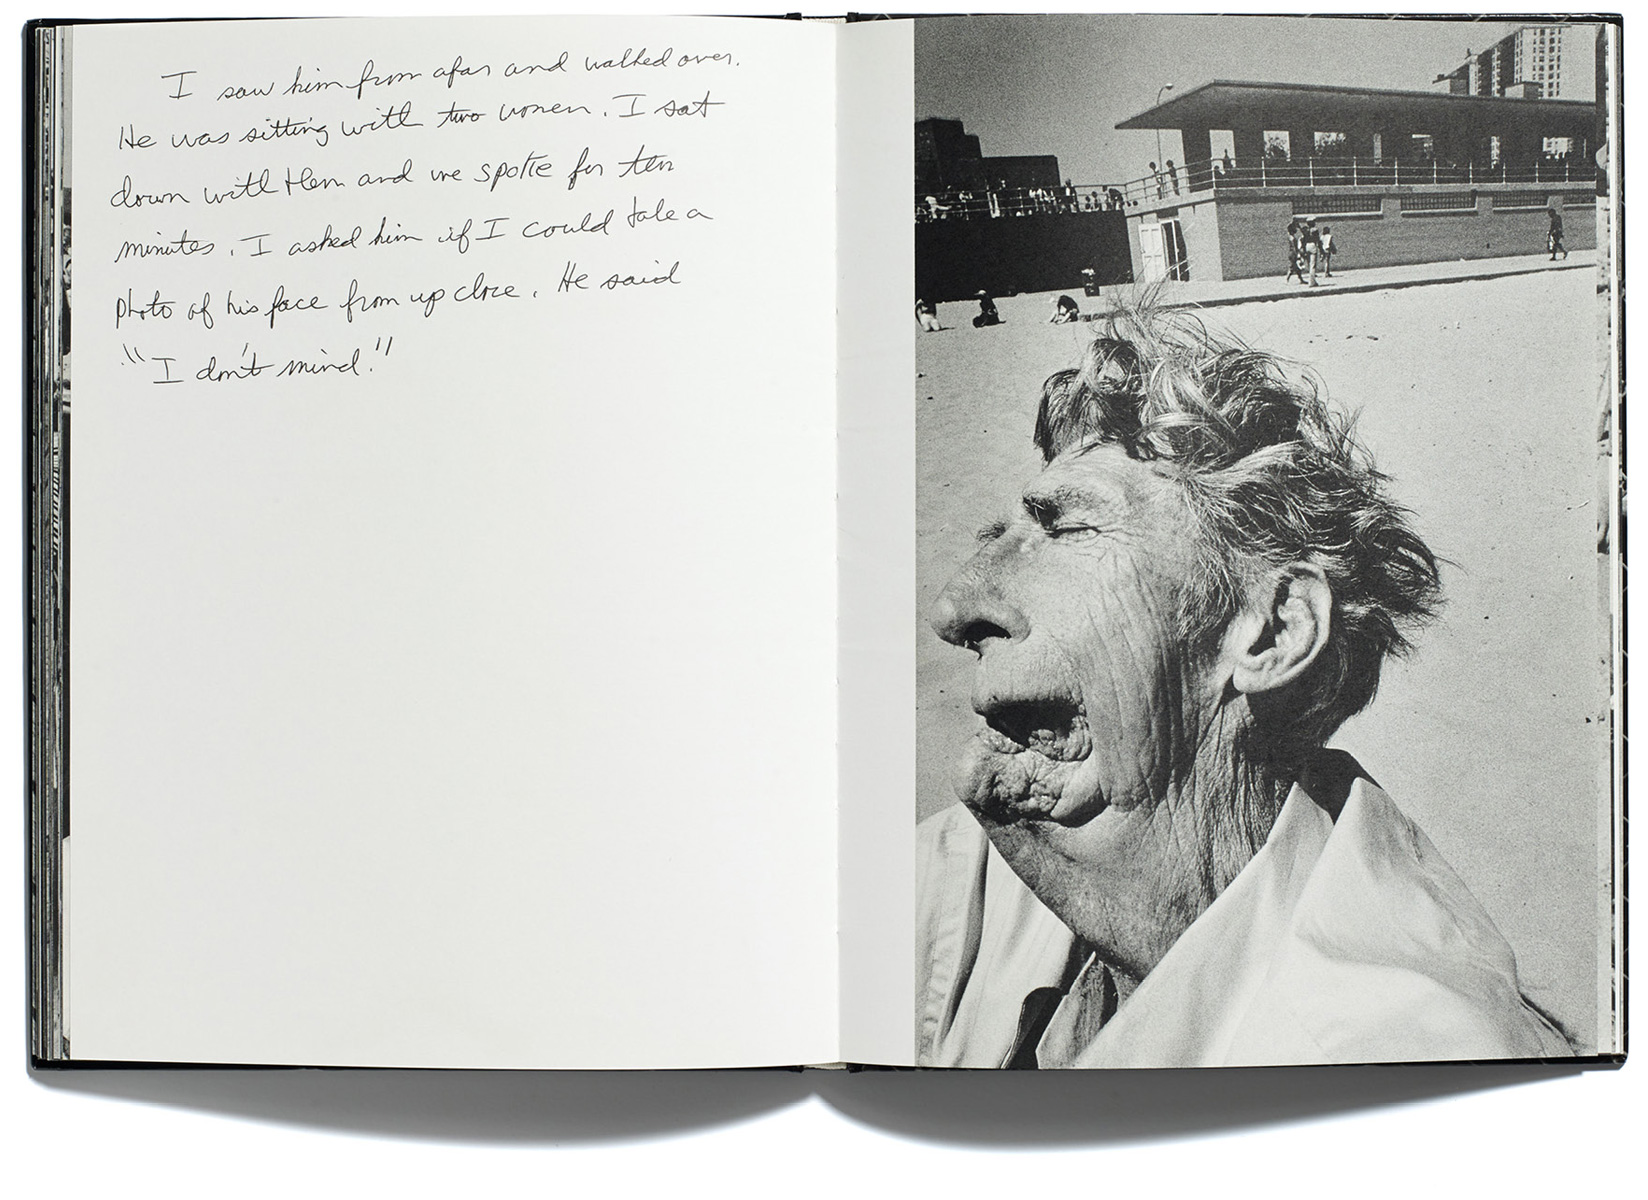 Bruce Gilden, Coney Island, Published by Browns Editions, Designed by Browns Design book